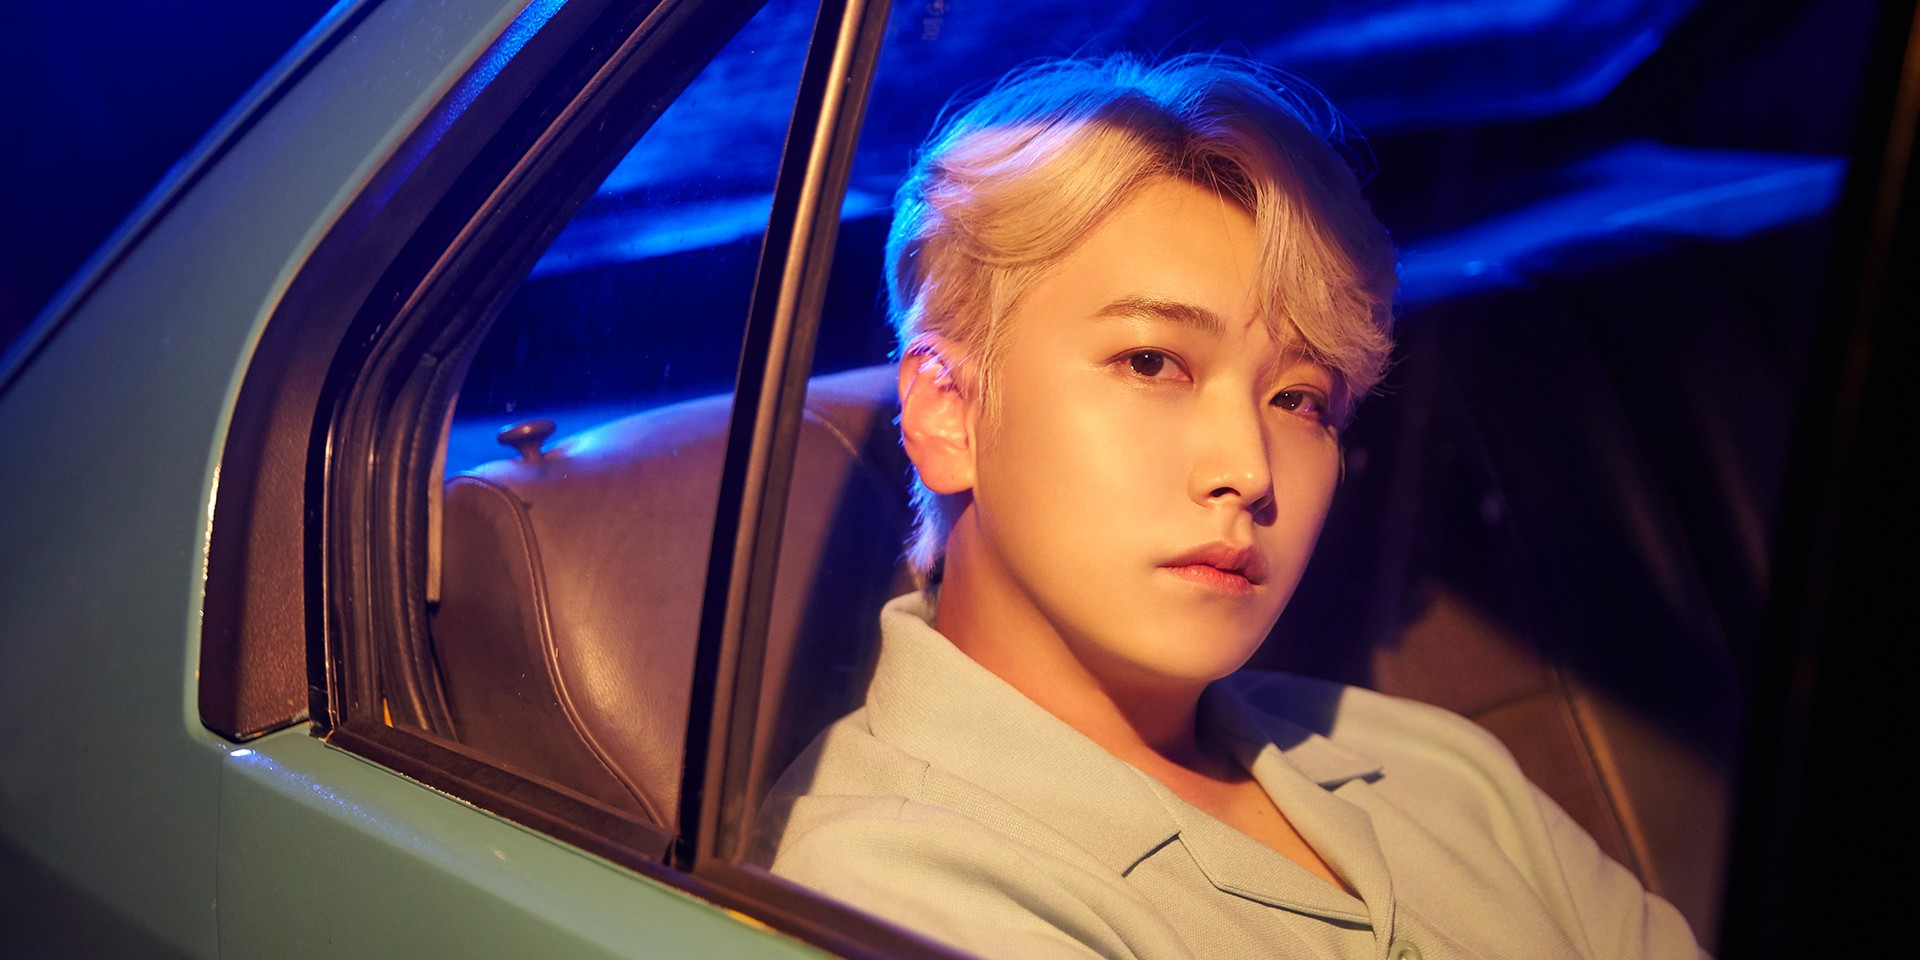 Super Junior's Sungmin to make solo comeback with 'Goodnight, Summer' in September